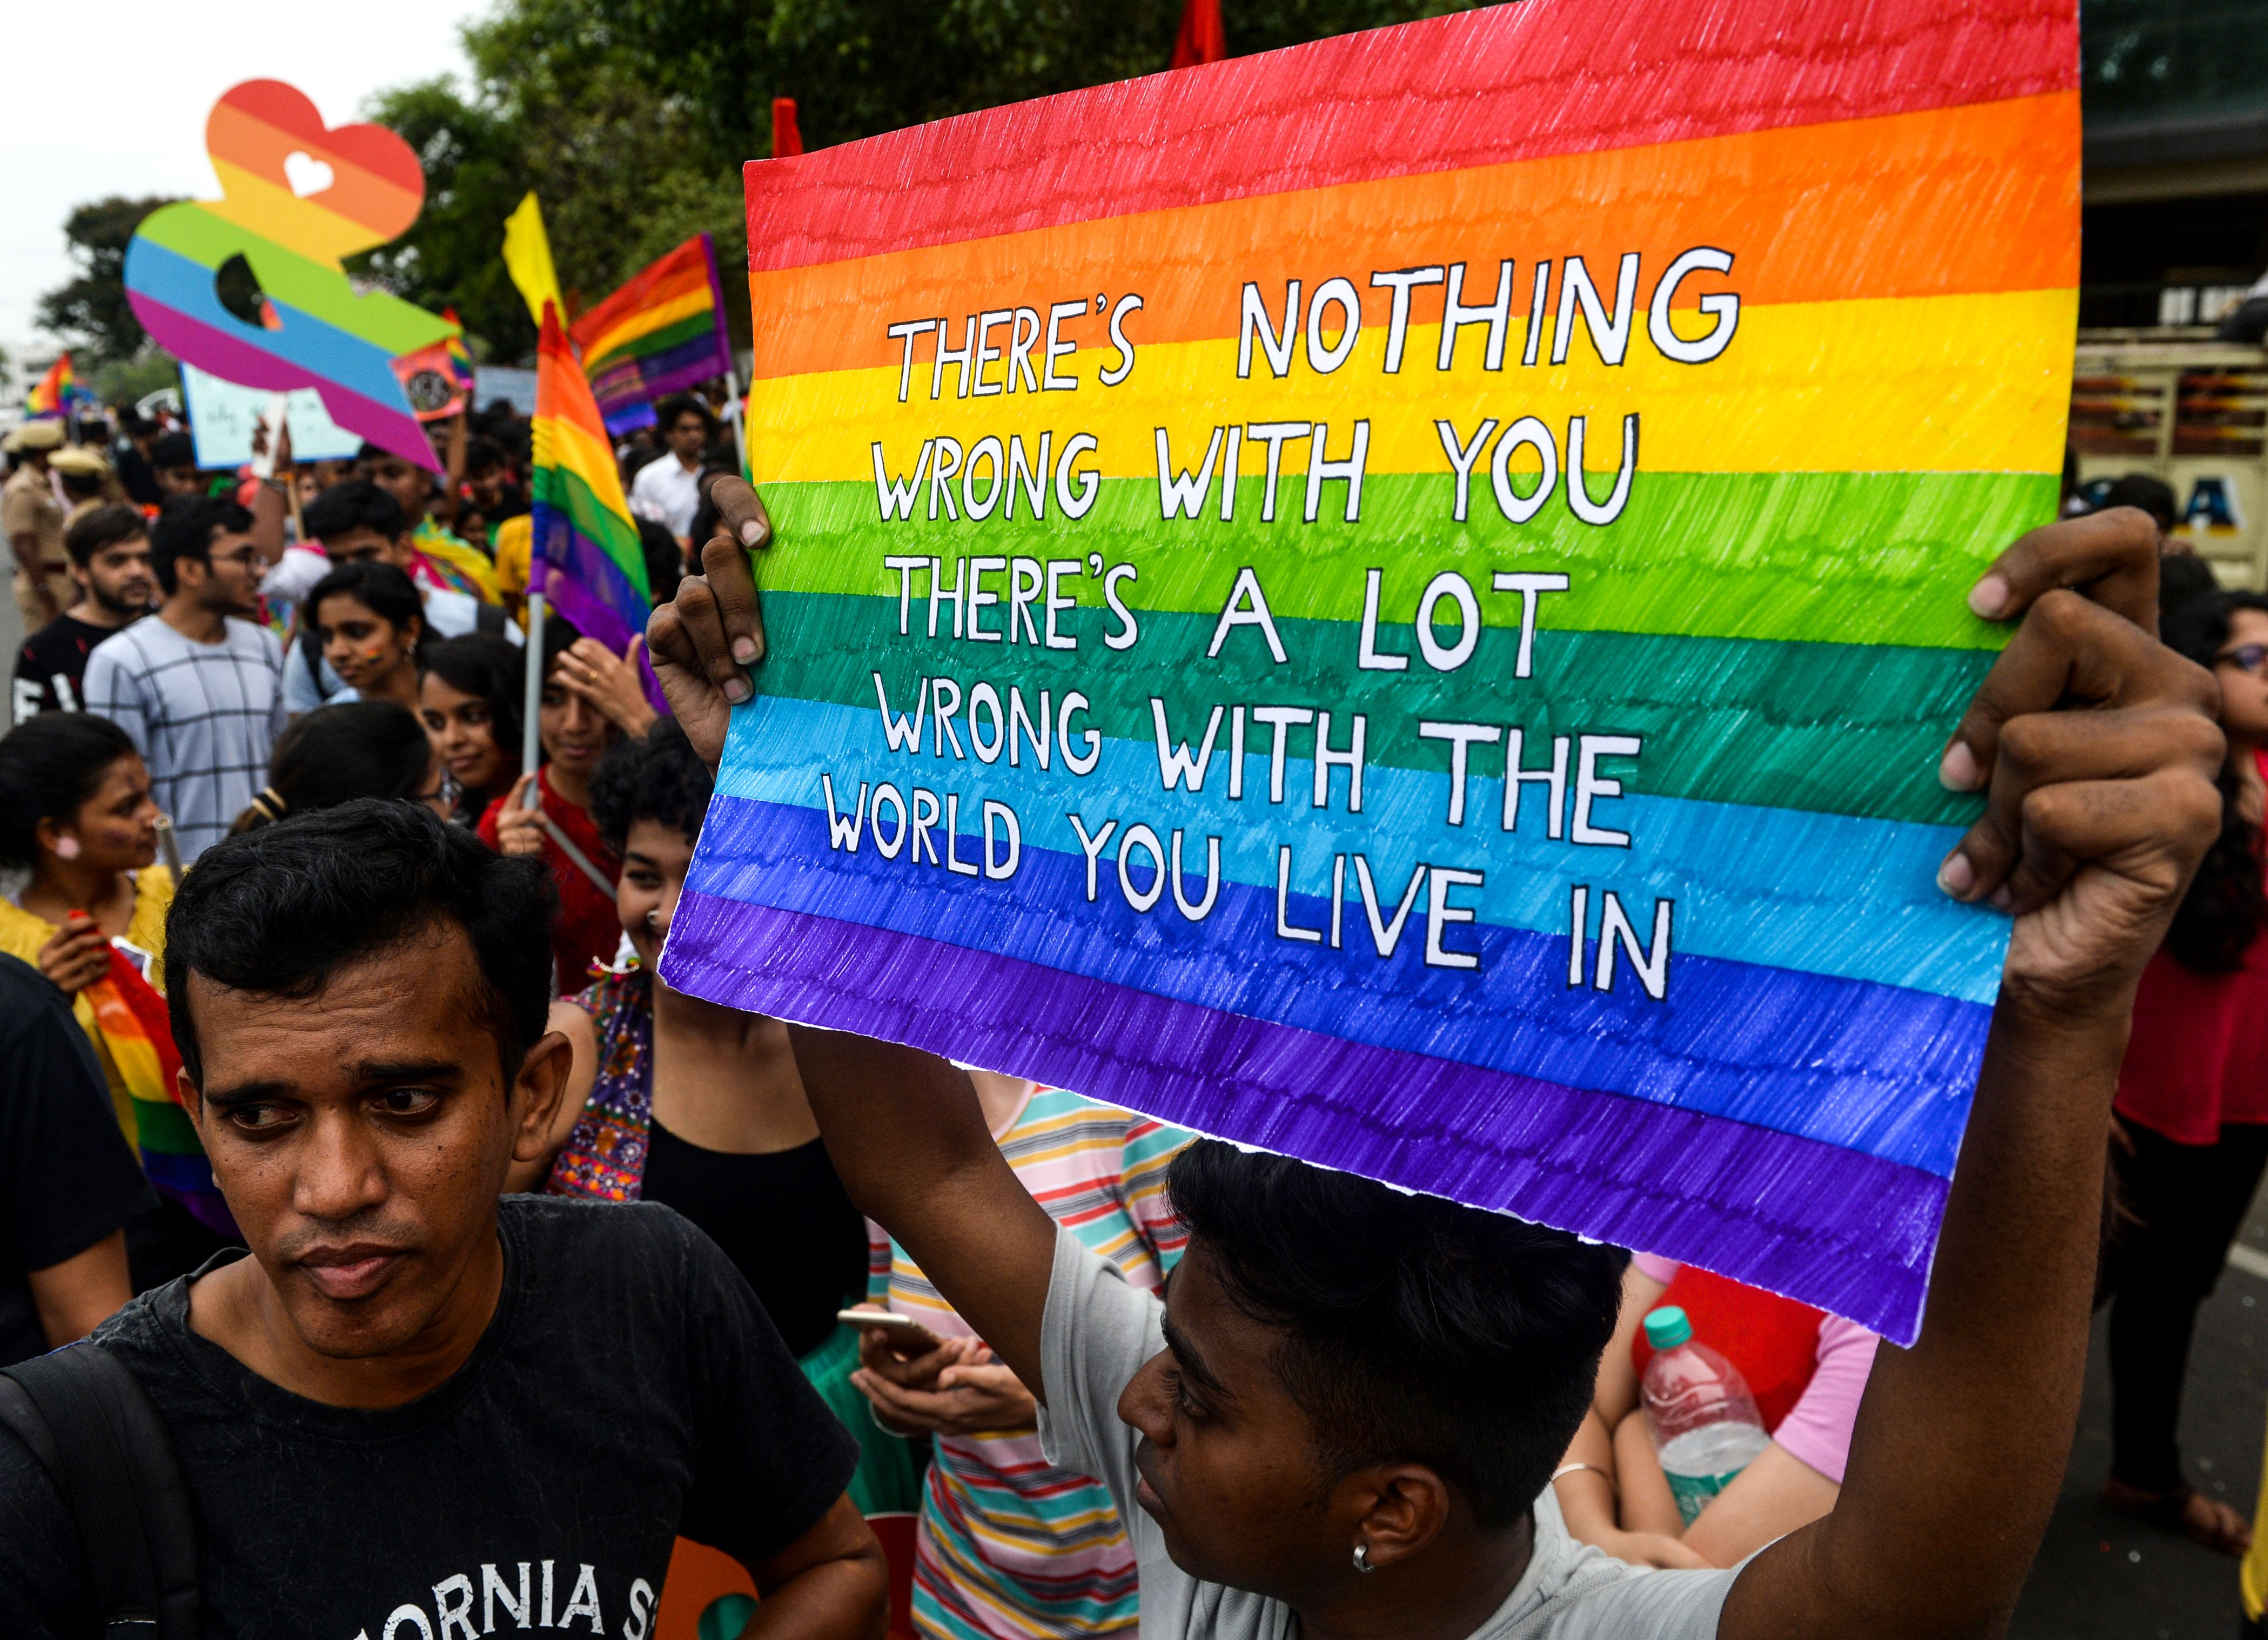 An Indian supporter of the lesbian, gay, bisexual, transgender (LGBT) community holds a placard as he takes part in a pride parade in Chennai on June 30, 2019. (Photo by ARUN SANKAR / AFP)        (Photo credit should read ARUN SANKAR/AFP/Getty Images)